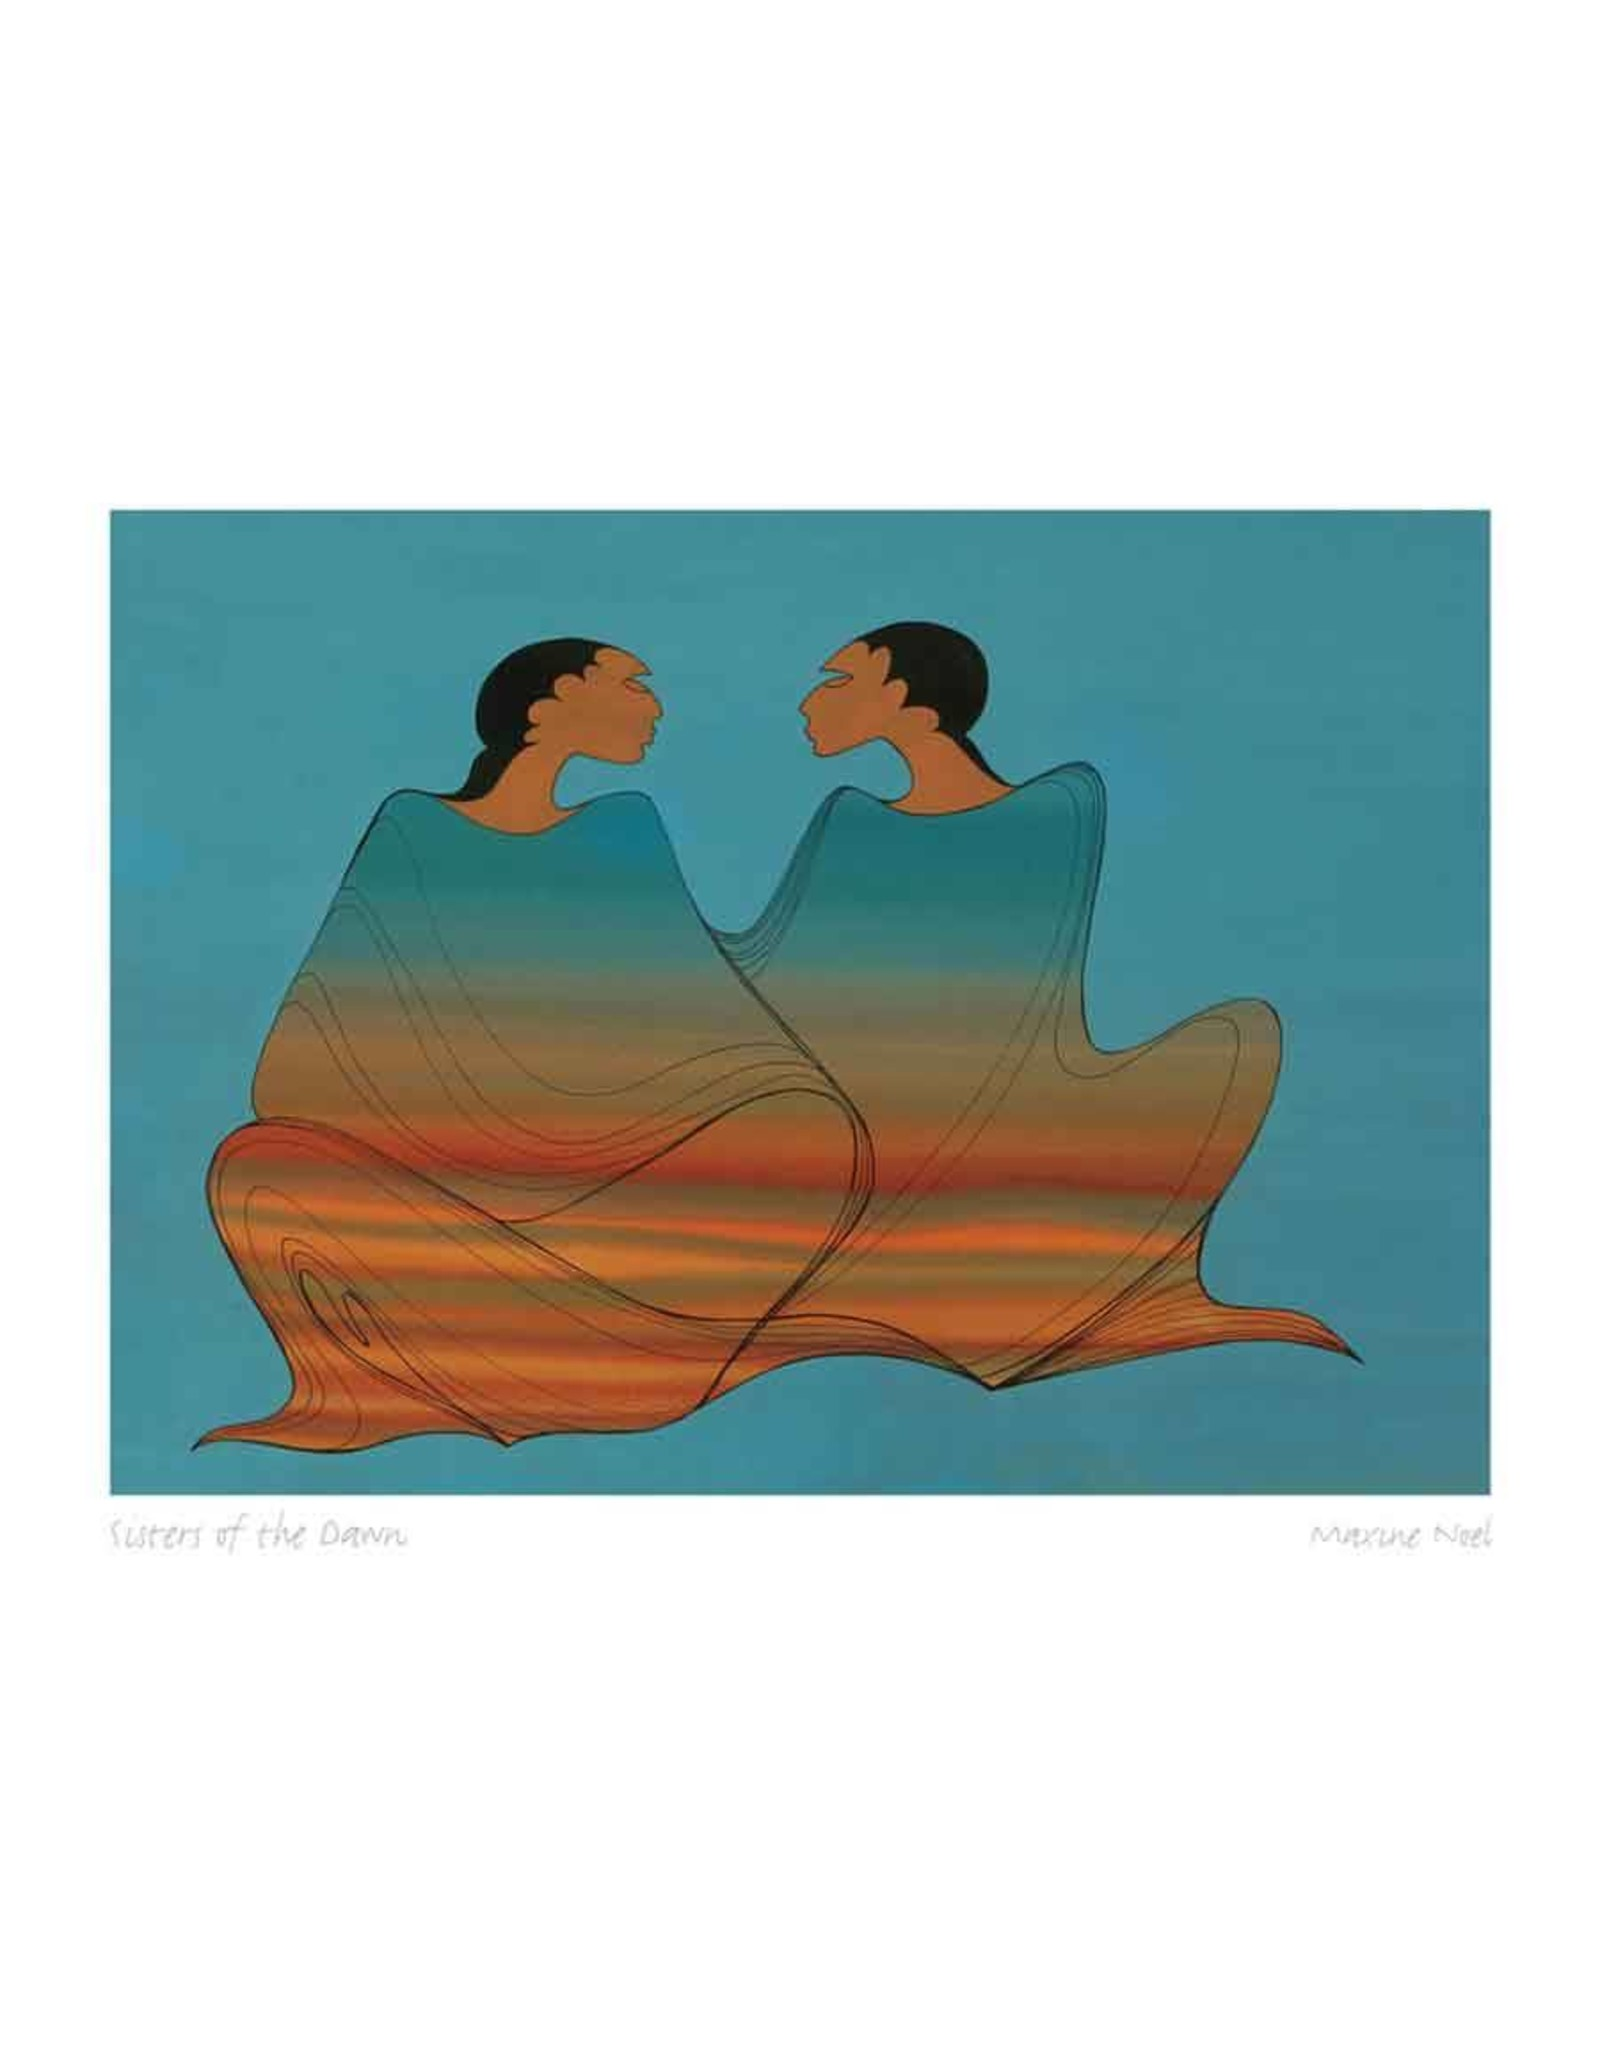 Sisters of the Dawn by Maxine Noel Matted